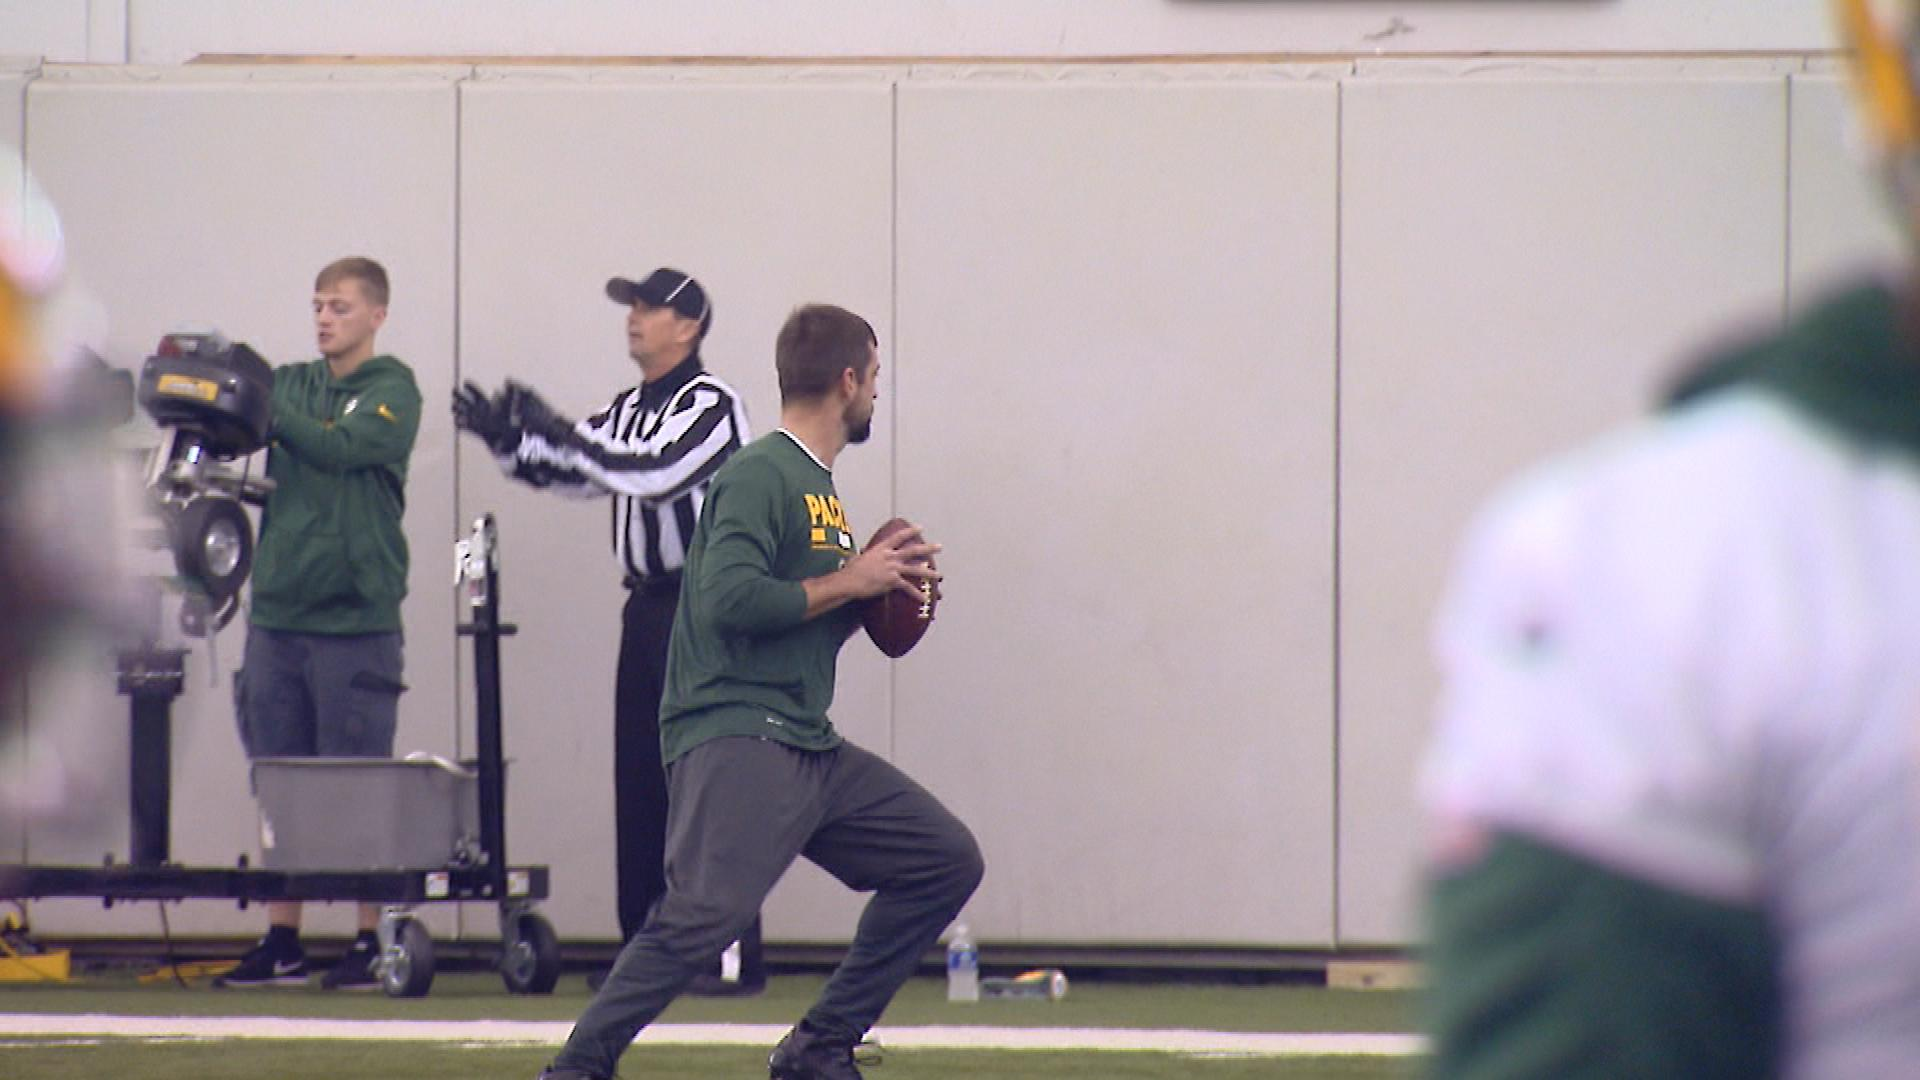 Green Bay Packers quarterback Aaron Rodgers goes through rehab drills at practice Nov. 15, 2017. (WLUK image)